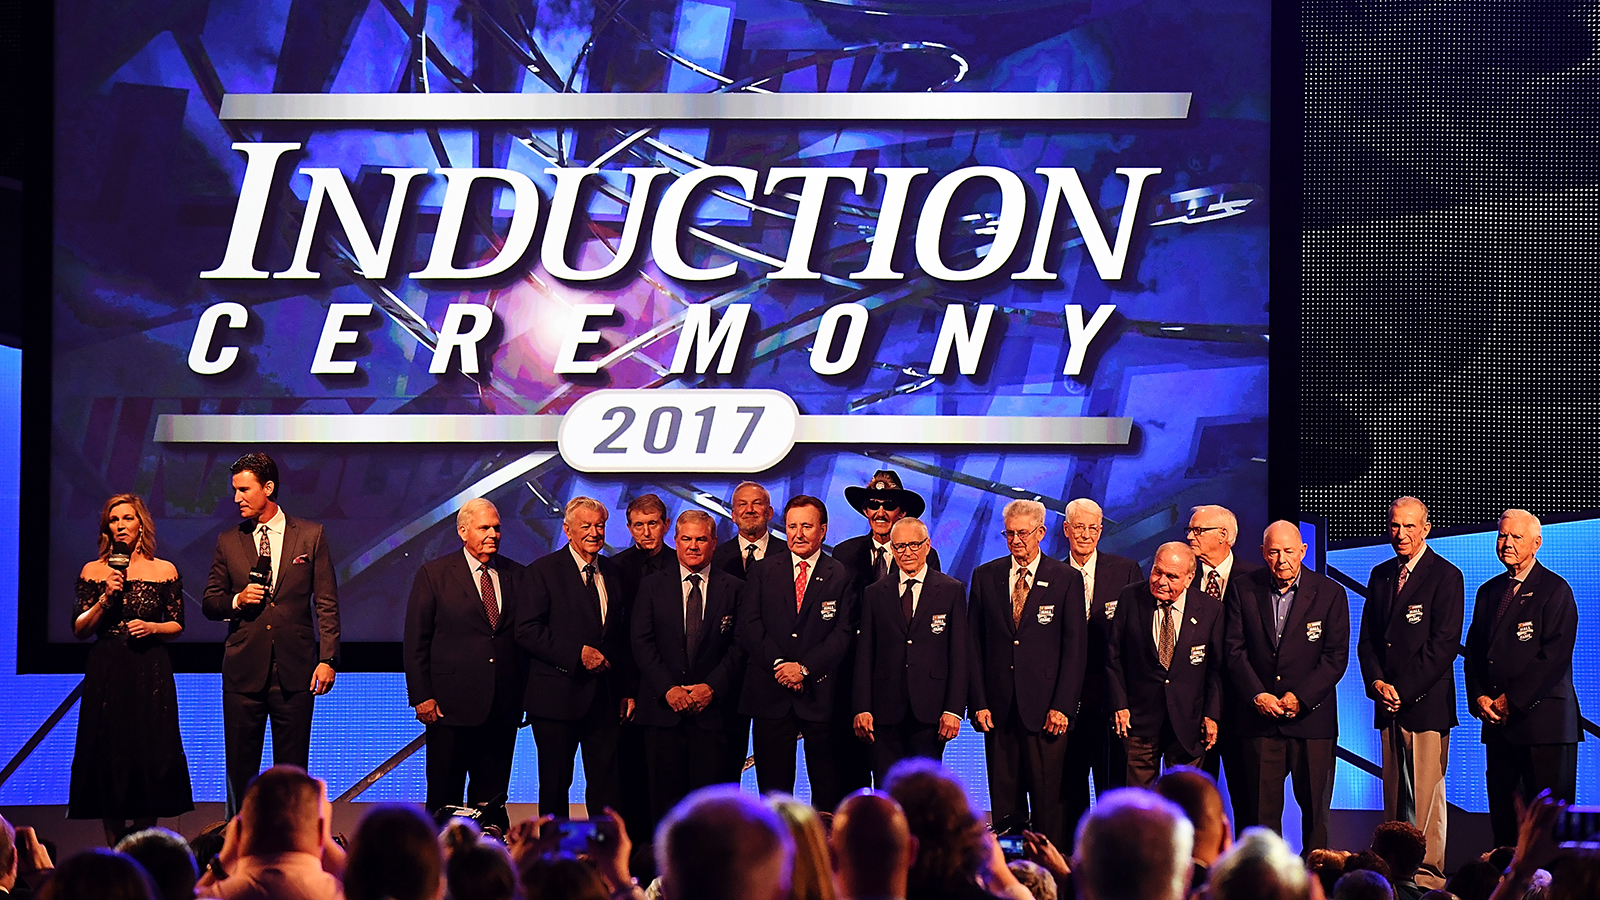 CHARLOTTE, NC - JANUARY 20: The living members of the NASCAR Hall of Fame gather as a group at the conclusion of the 2017 Hall of Fame Induction Ceremony at NASCAR Hall of Fame on January 20, 2017 in Charlotte, North Carolina.  (Photo by Mike Comer/Getty Images)